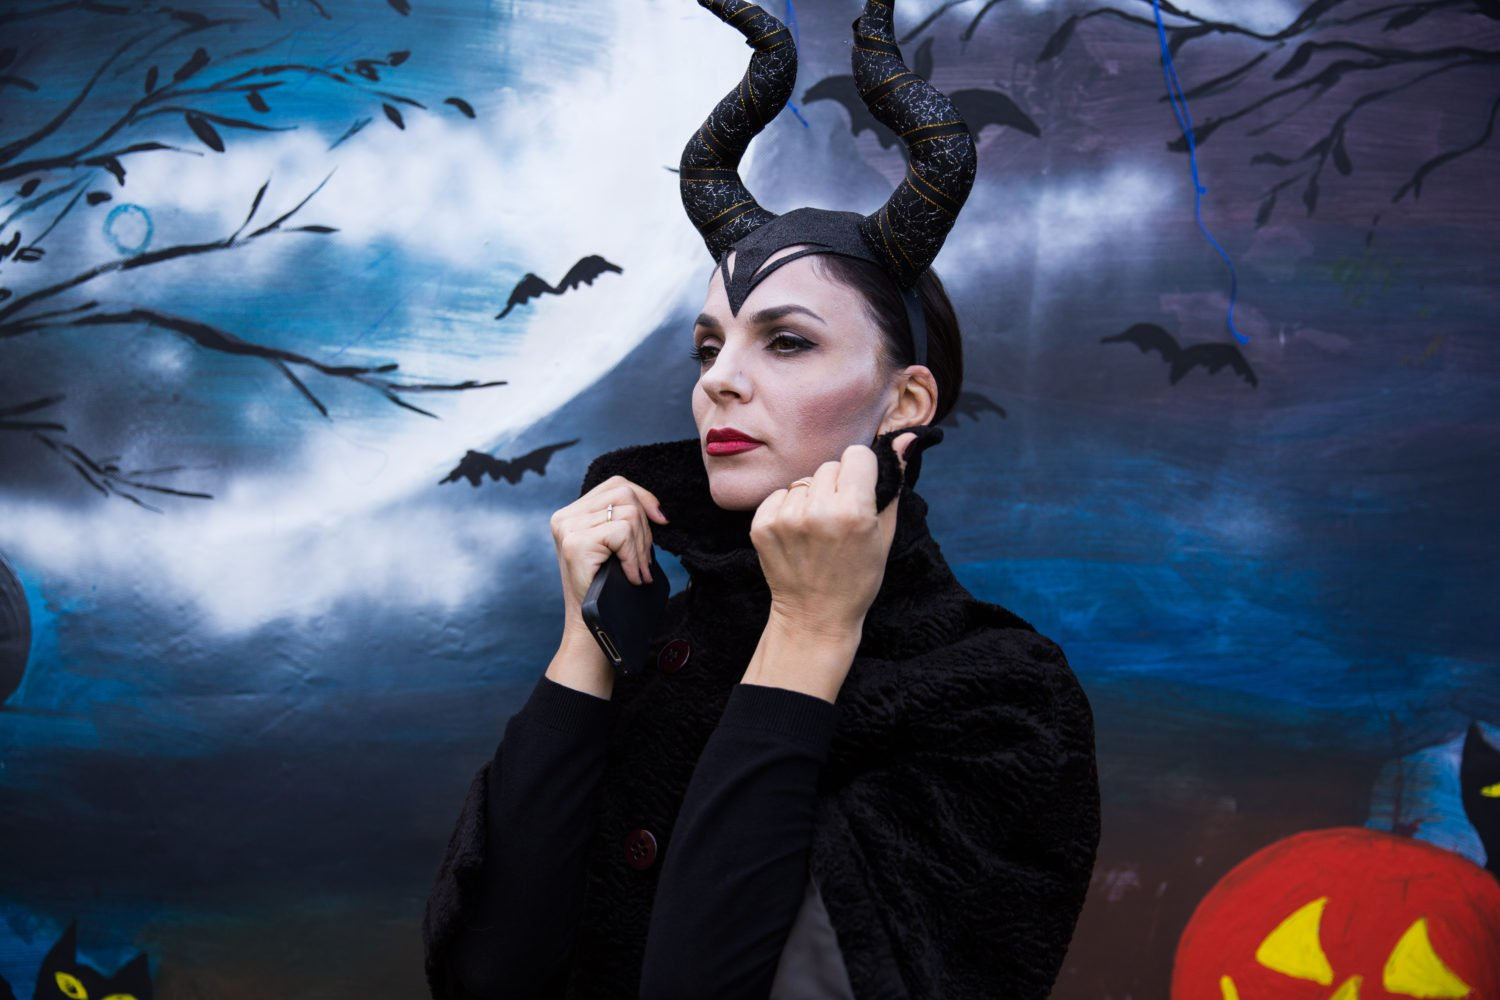 Mrs. Juli as Maleficent